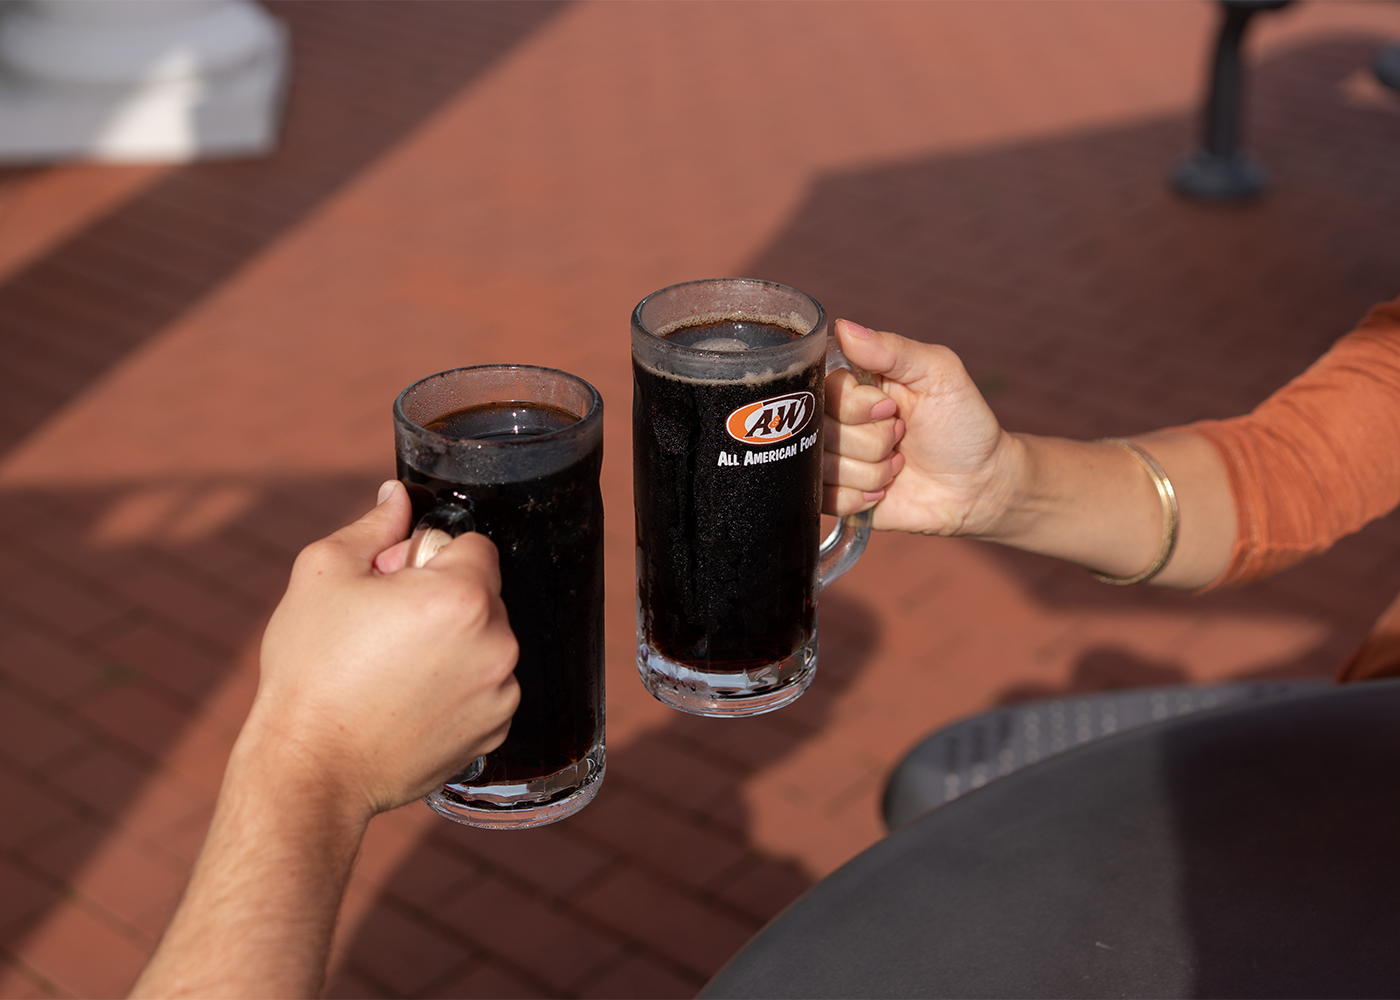 Two people outdoors toasting with mugs of A&W Root Beer